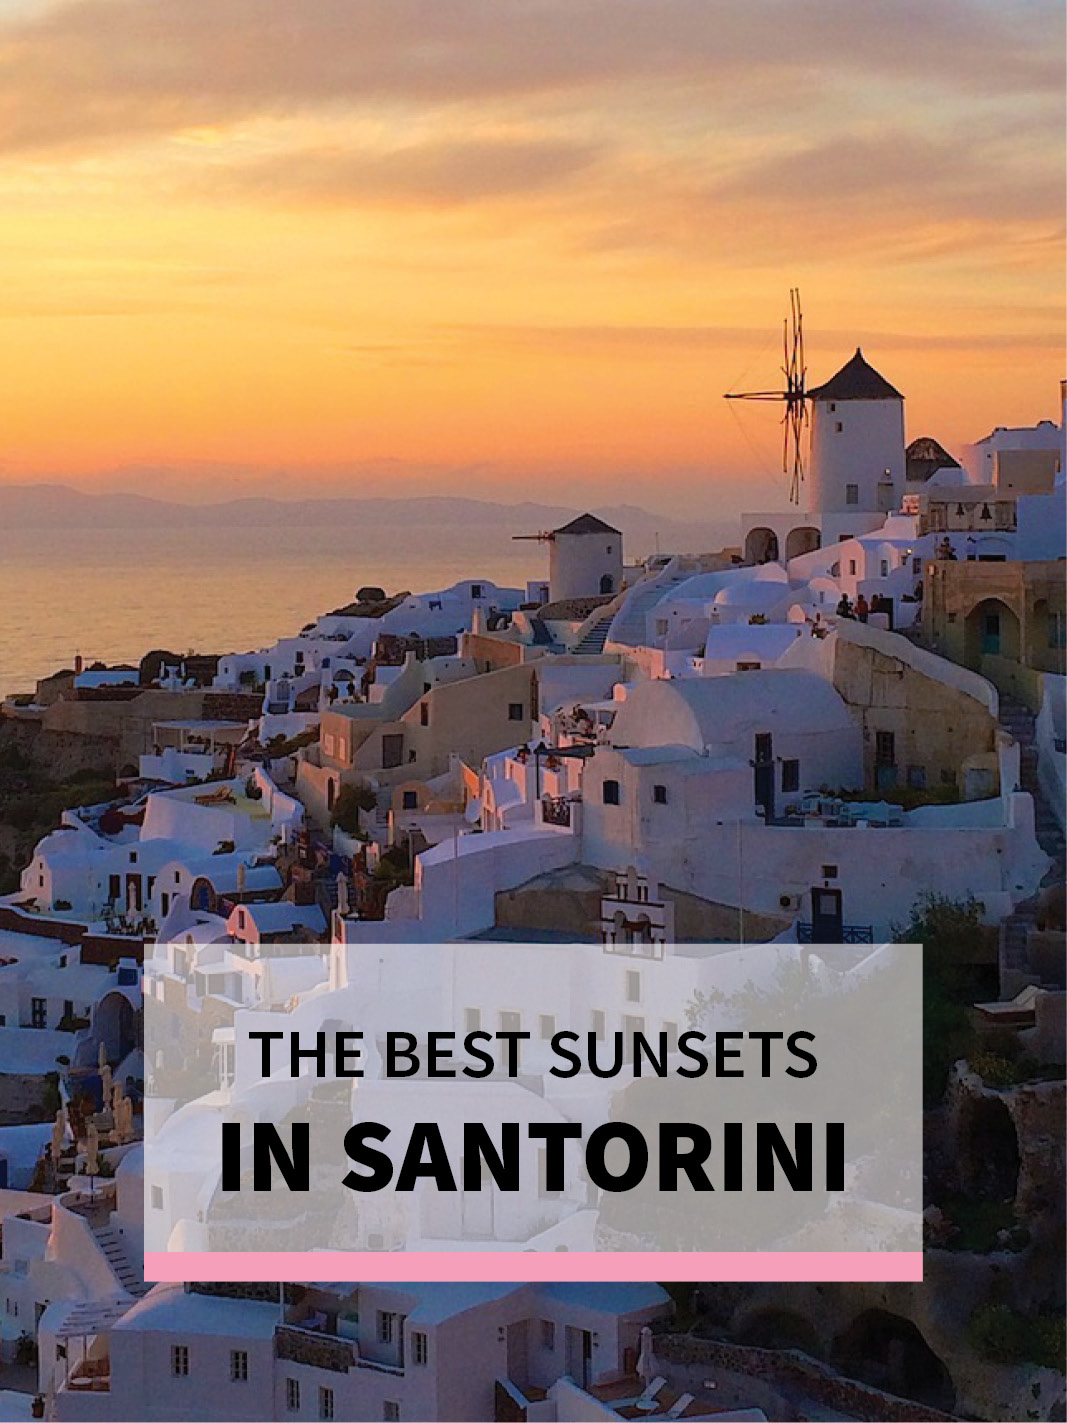 The Best Sunsets in Santorini